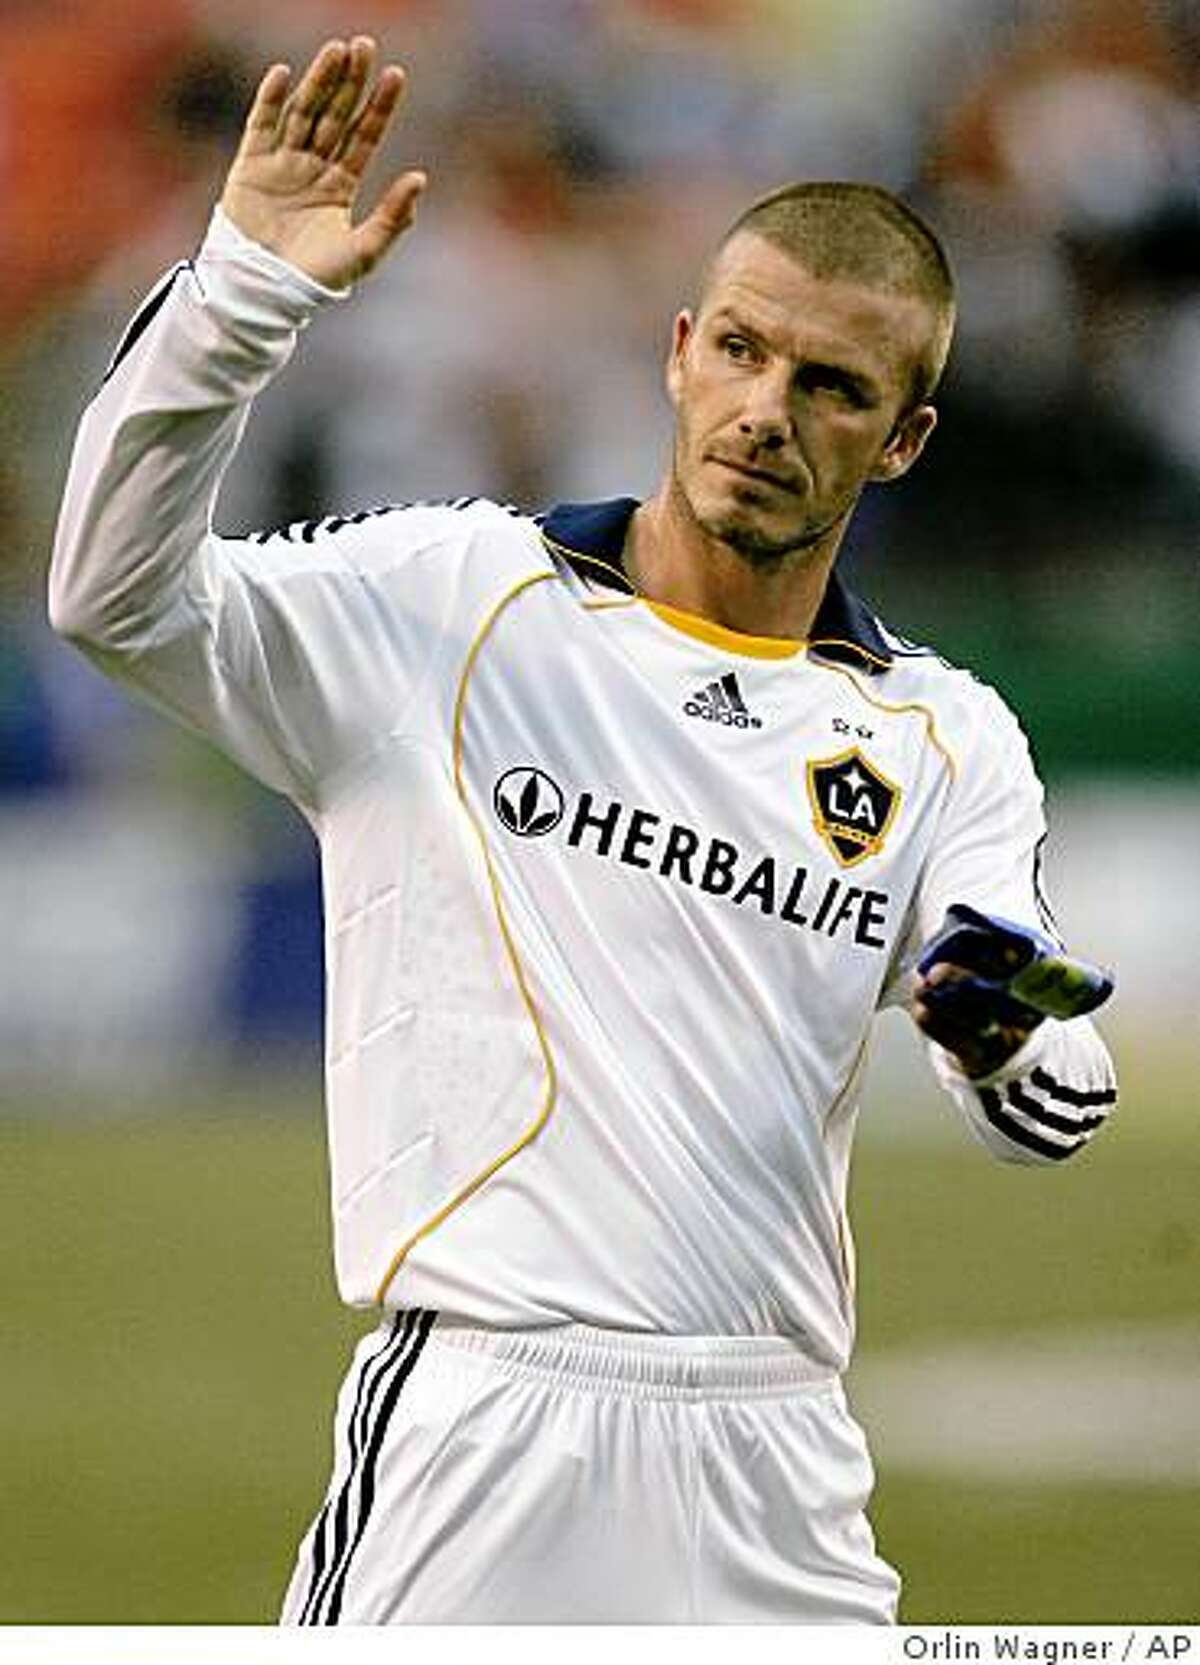 AC Milan is close to signing David Beckham in a loan deal that would allow the Los Angeles Galaxy midfielder and former England captain to play in Italy's Serie A for a few months starting in January.